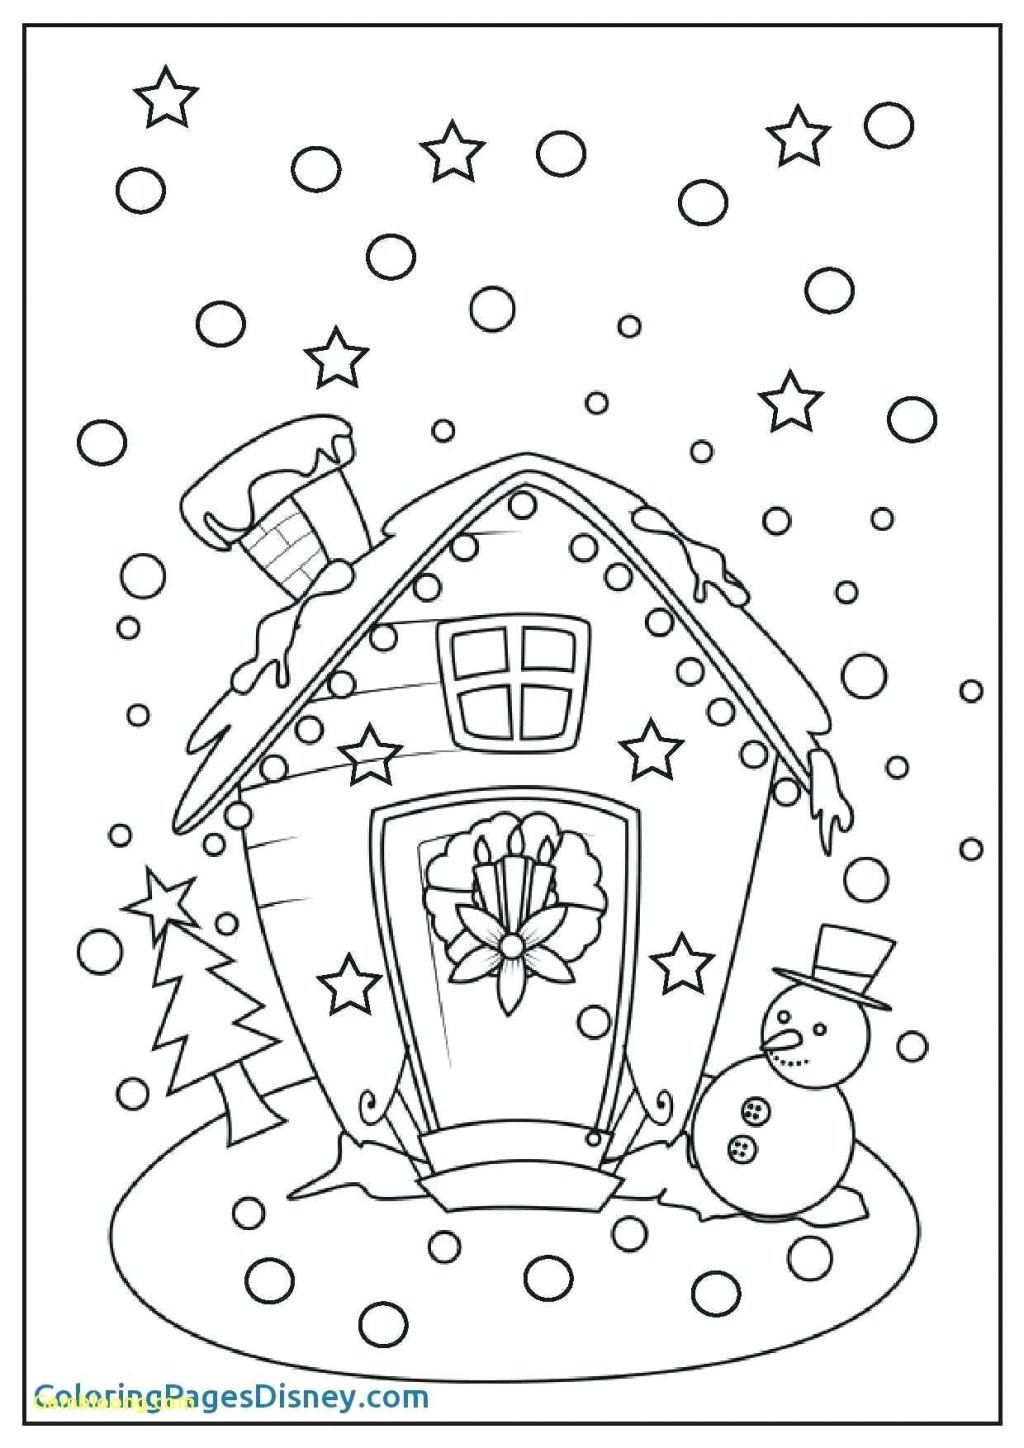 Equivalent Fractions Coloring Worksheet Fraction Coloring Sheets